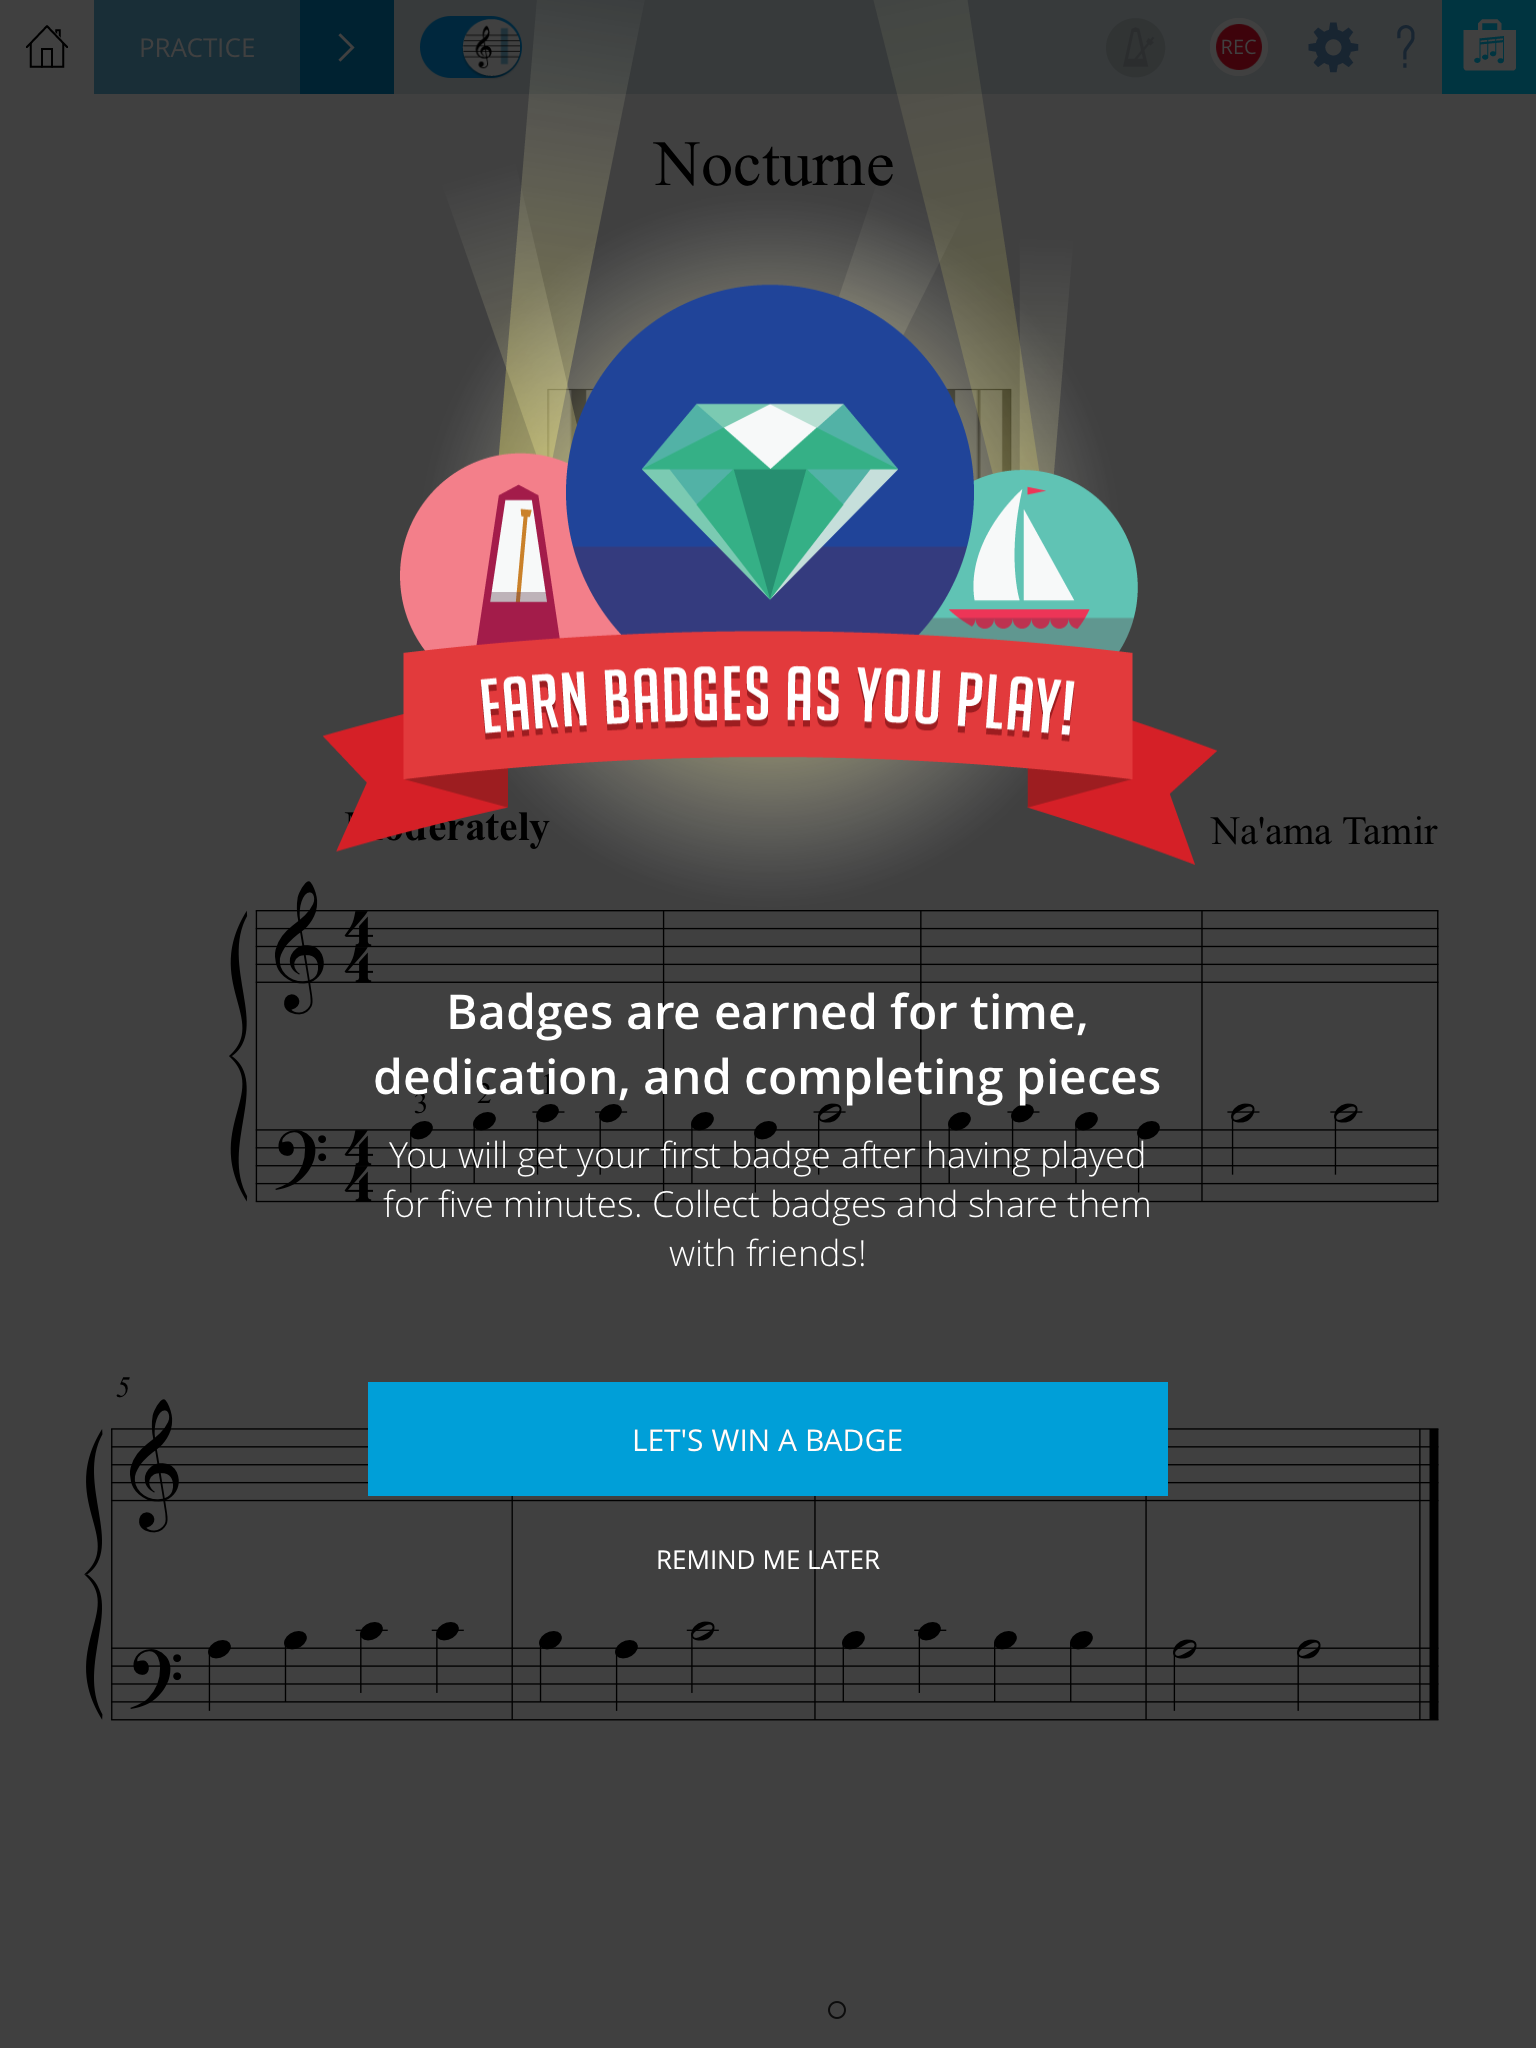 Practice mode encourages students to earn badges through practice.